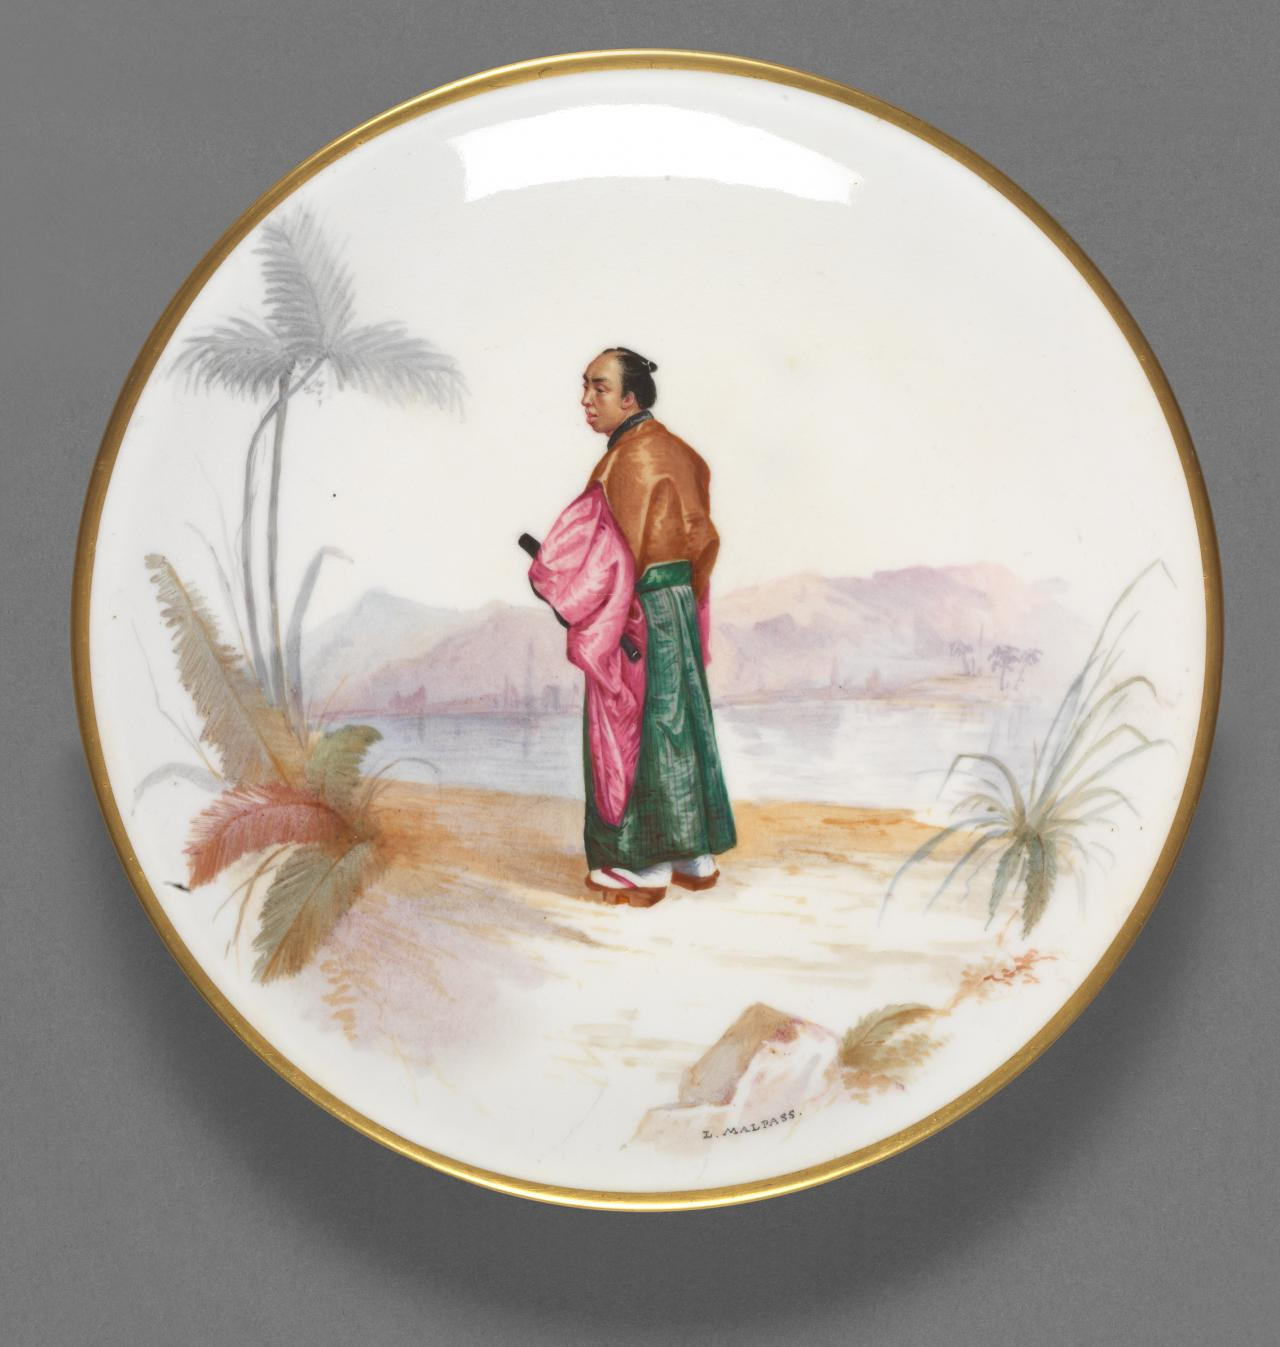 Plate (image of Japanese fishman)